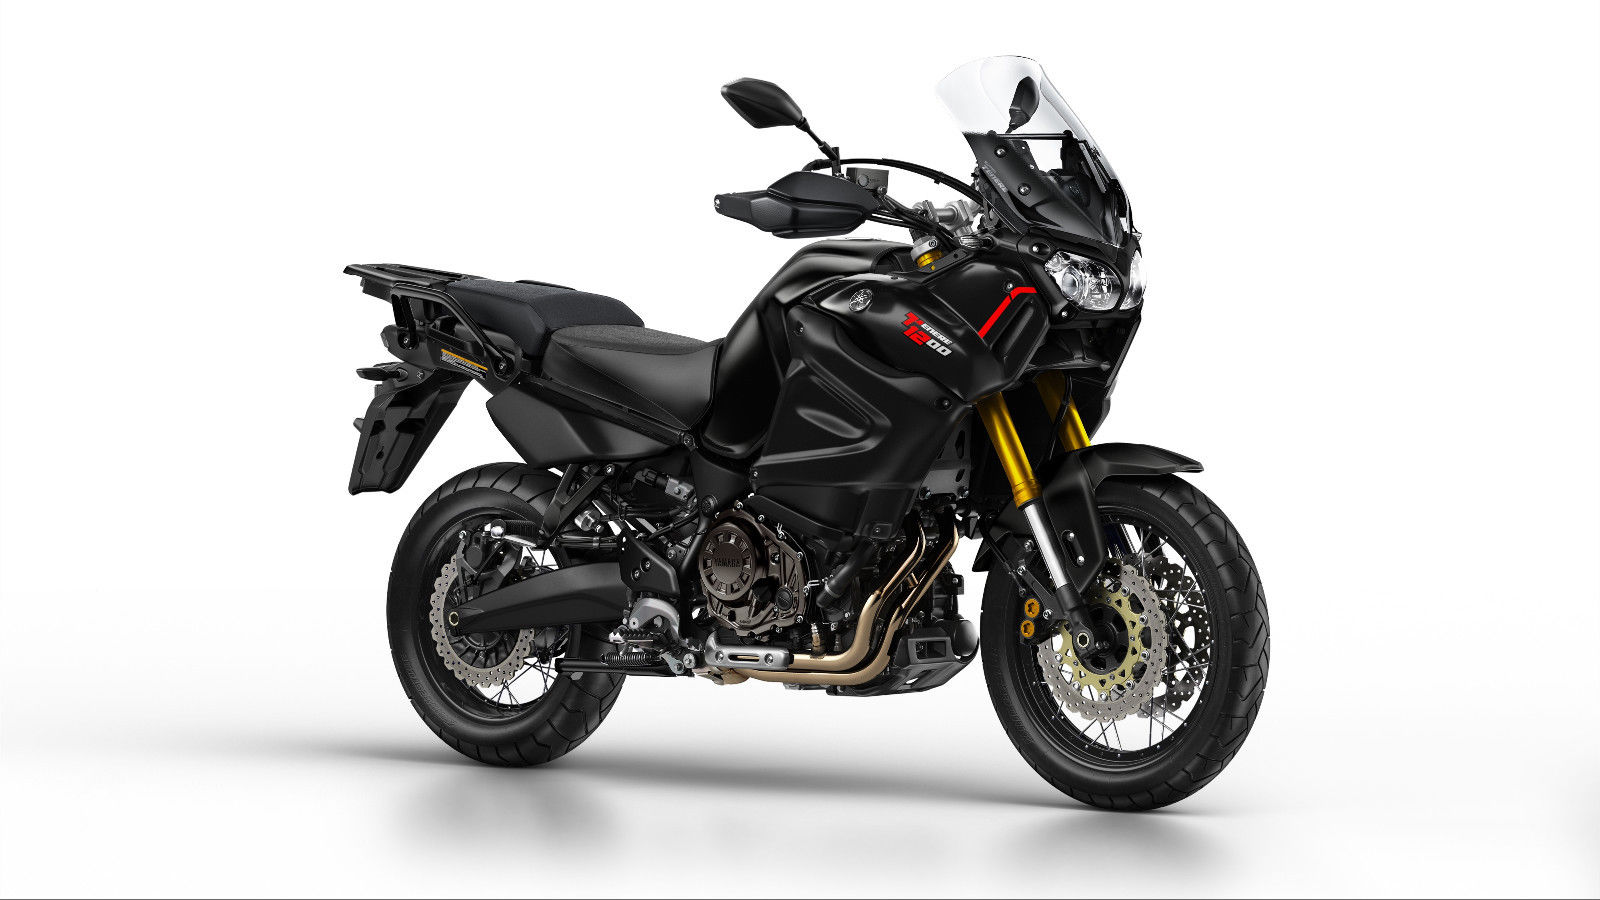 MT-07 ABS Modell 2019 SOFORT LIEFERBAR!